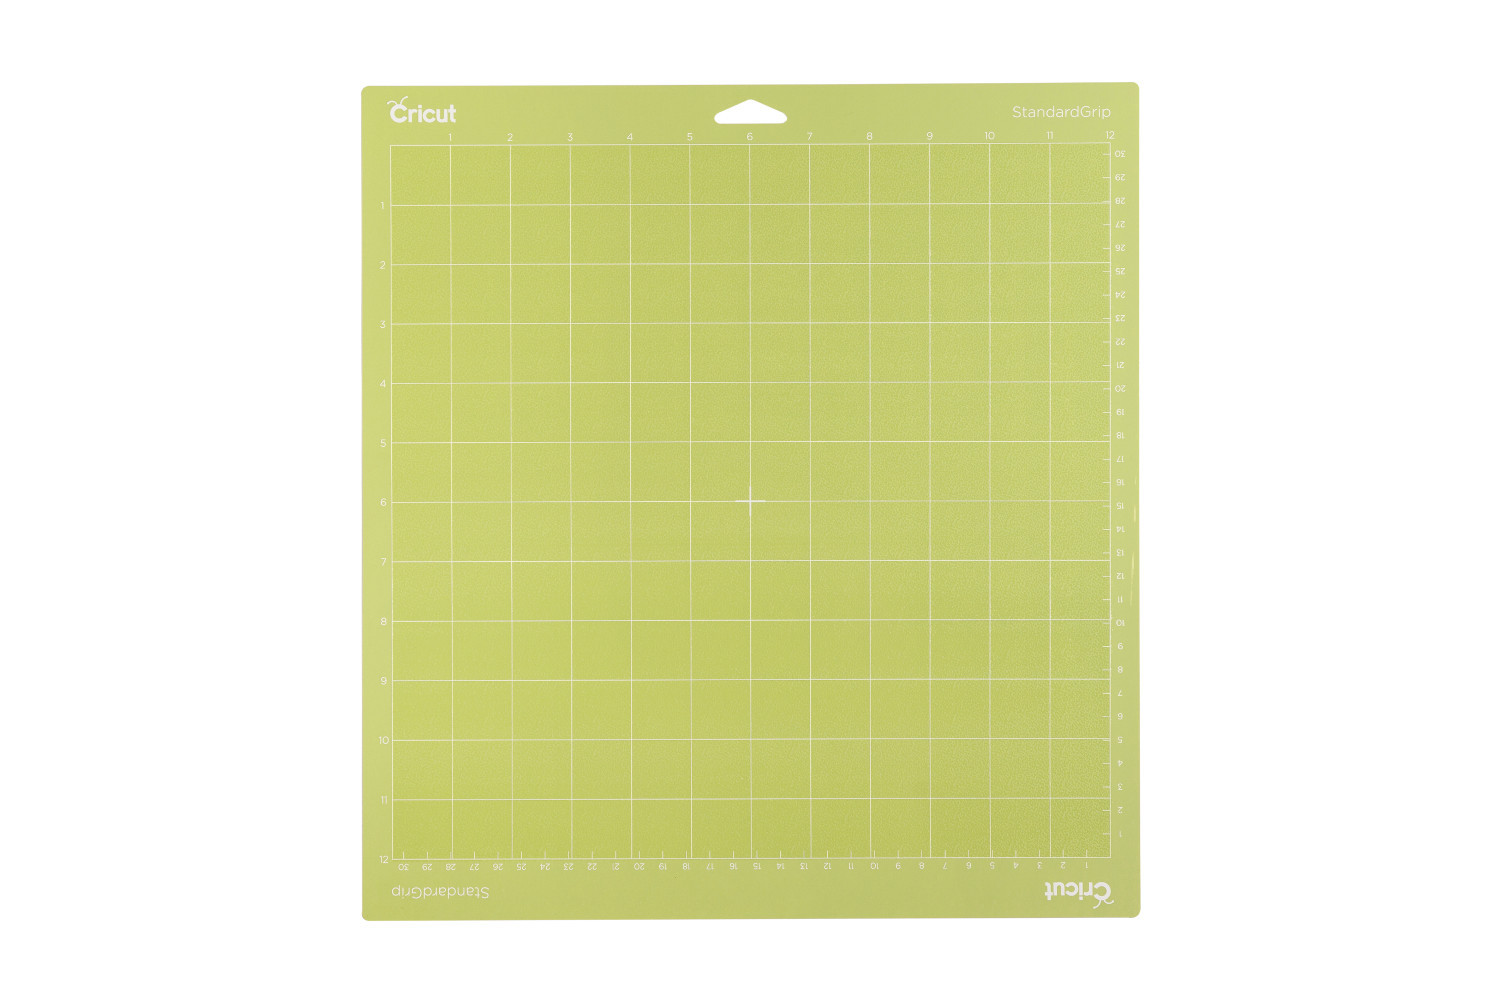 2007793 - Cricut Explore/Maker StandardGrip Machine Mat (30x30cm, 1 Piece)